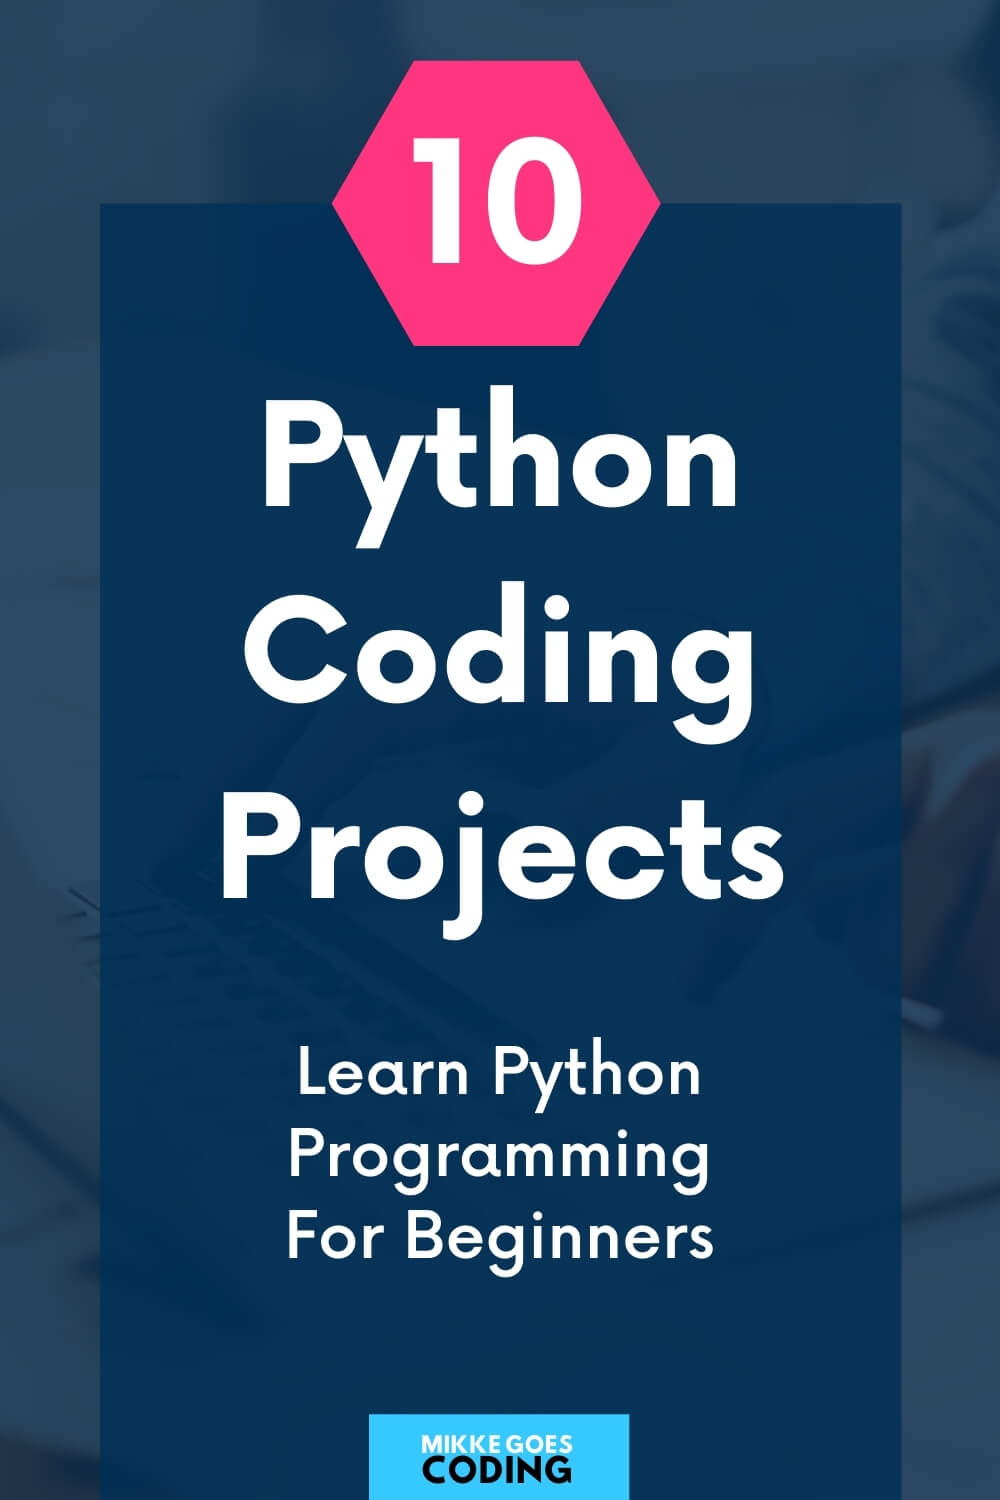 Python Projects for Beginners: 10 Easy Python Programming Project Ideas